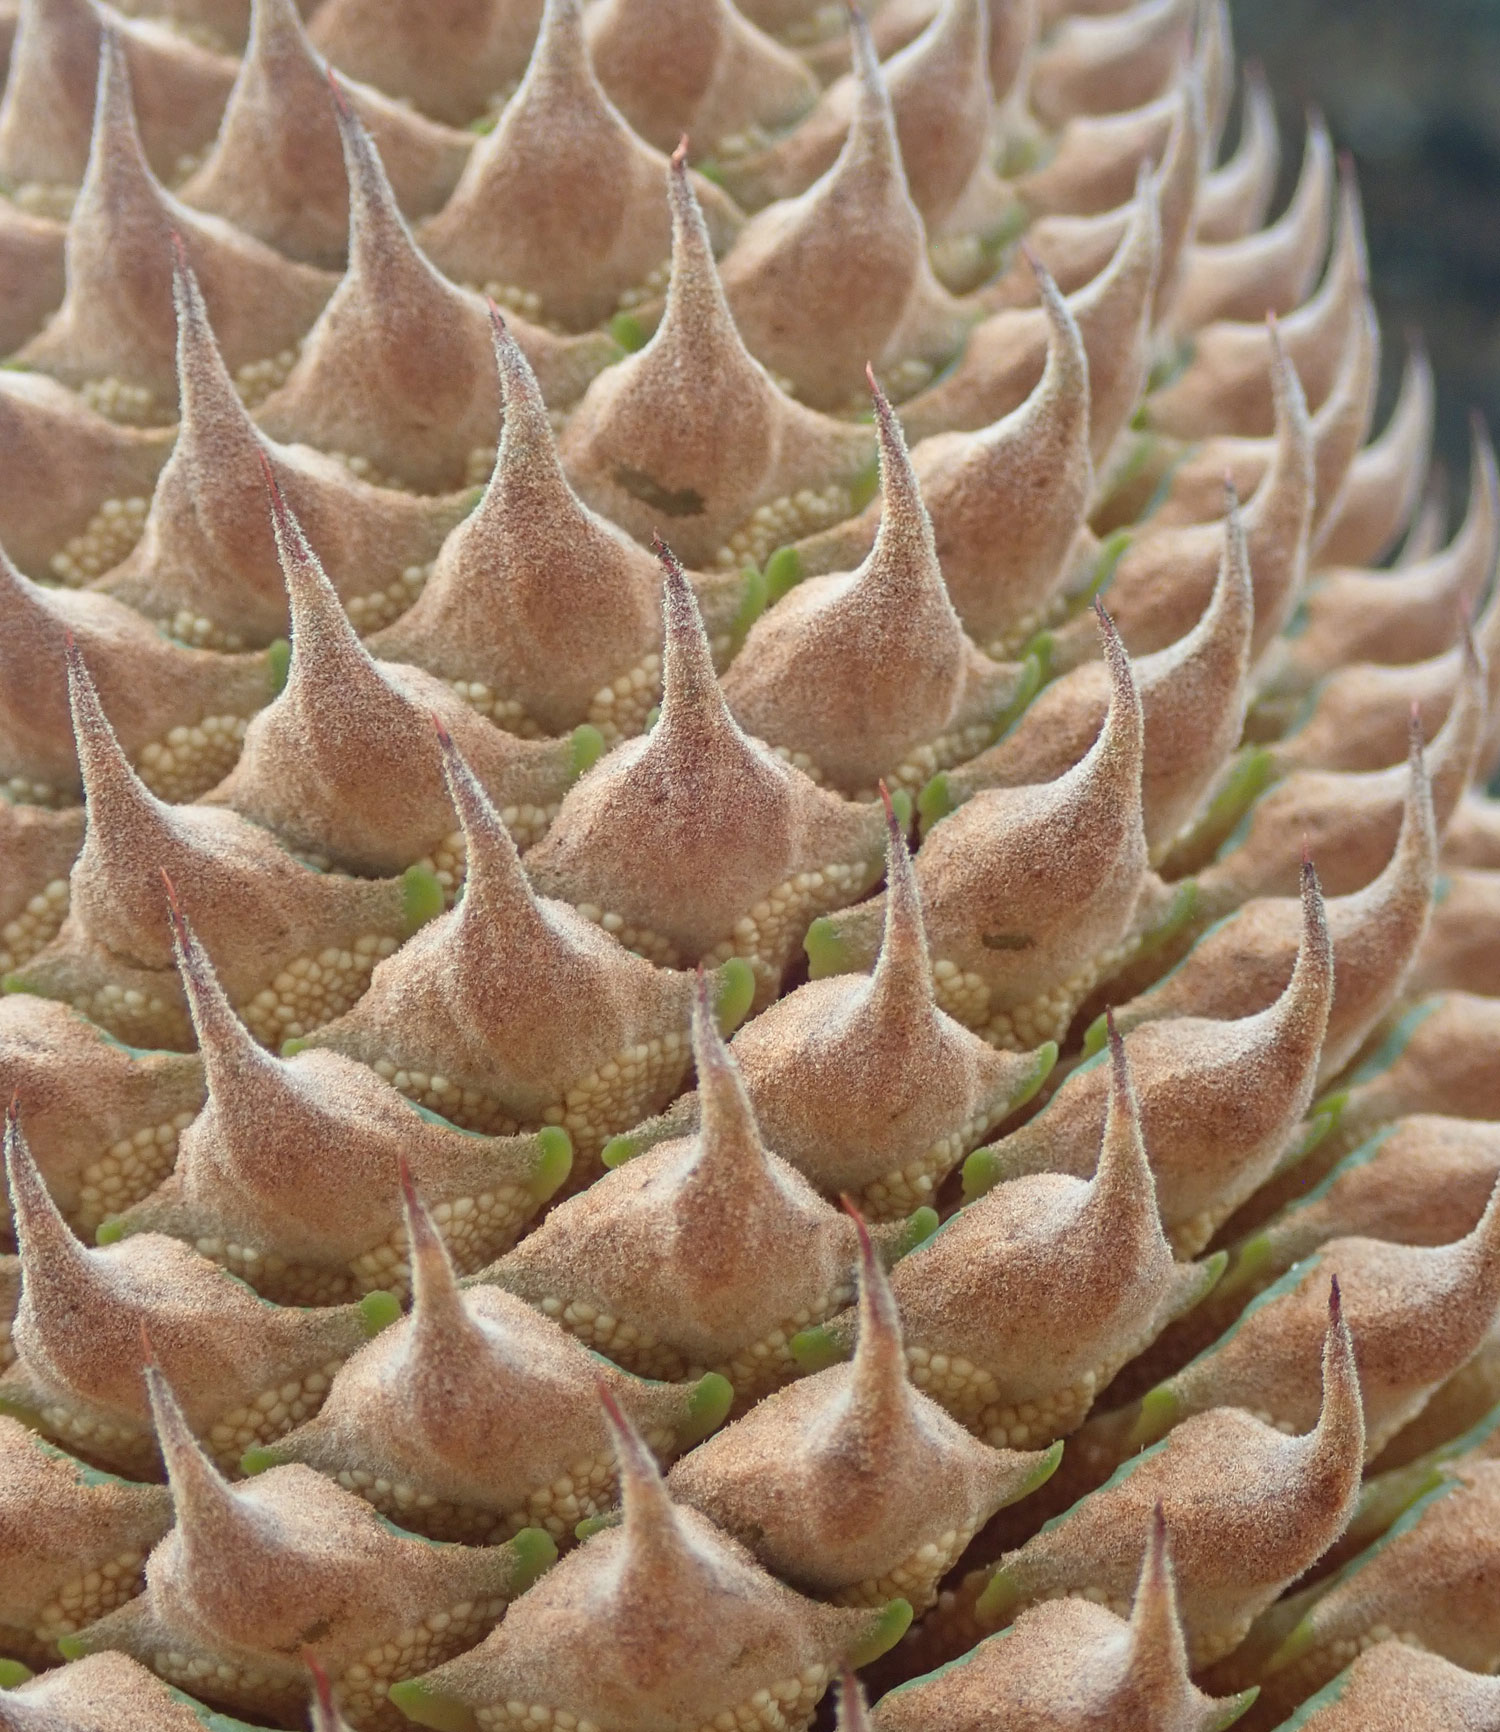 Up close with a cycad showing little sacs underneath the bracts